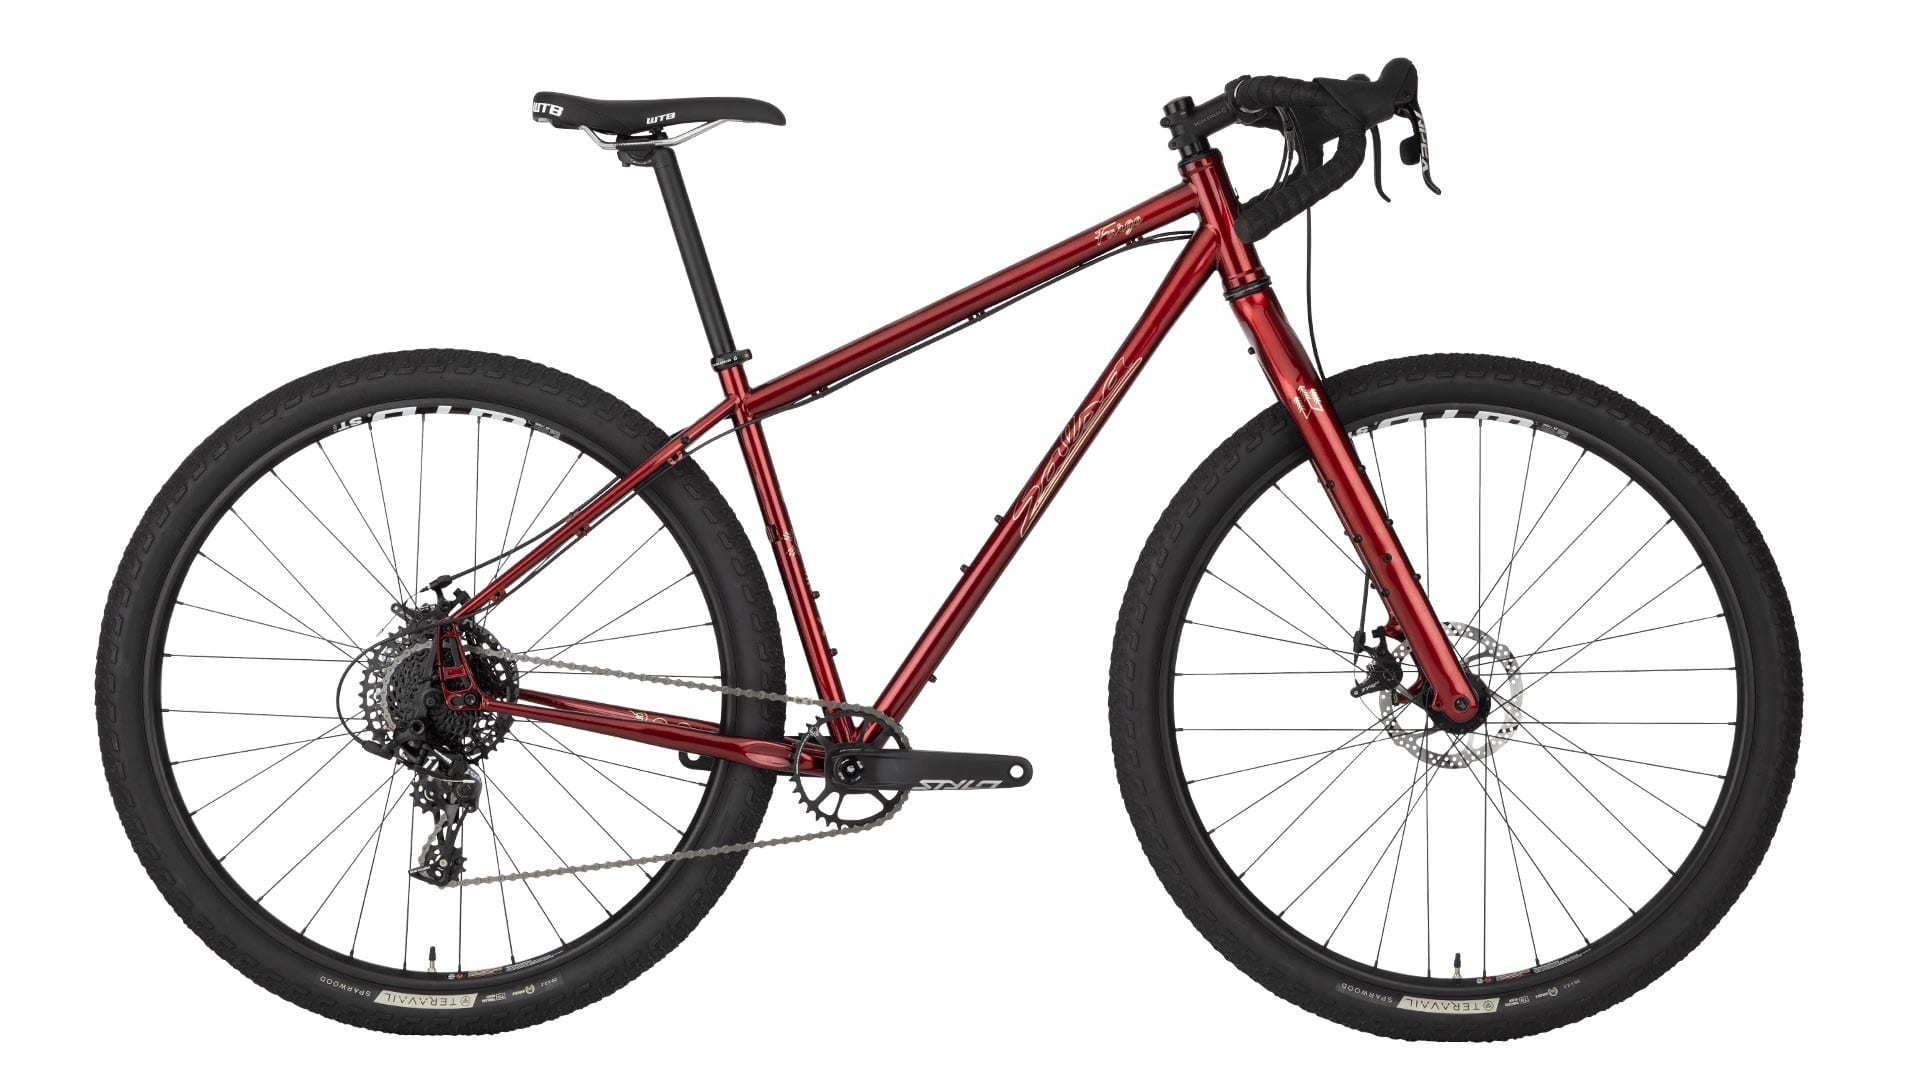 Introducing the 2020 Salsa Fargo - a First Impression Overview 12